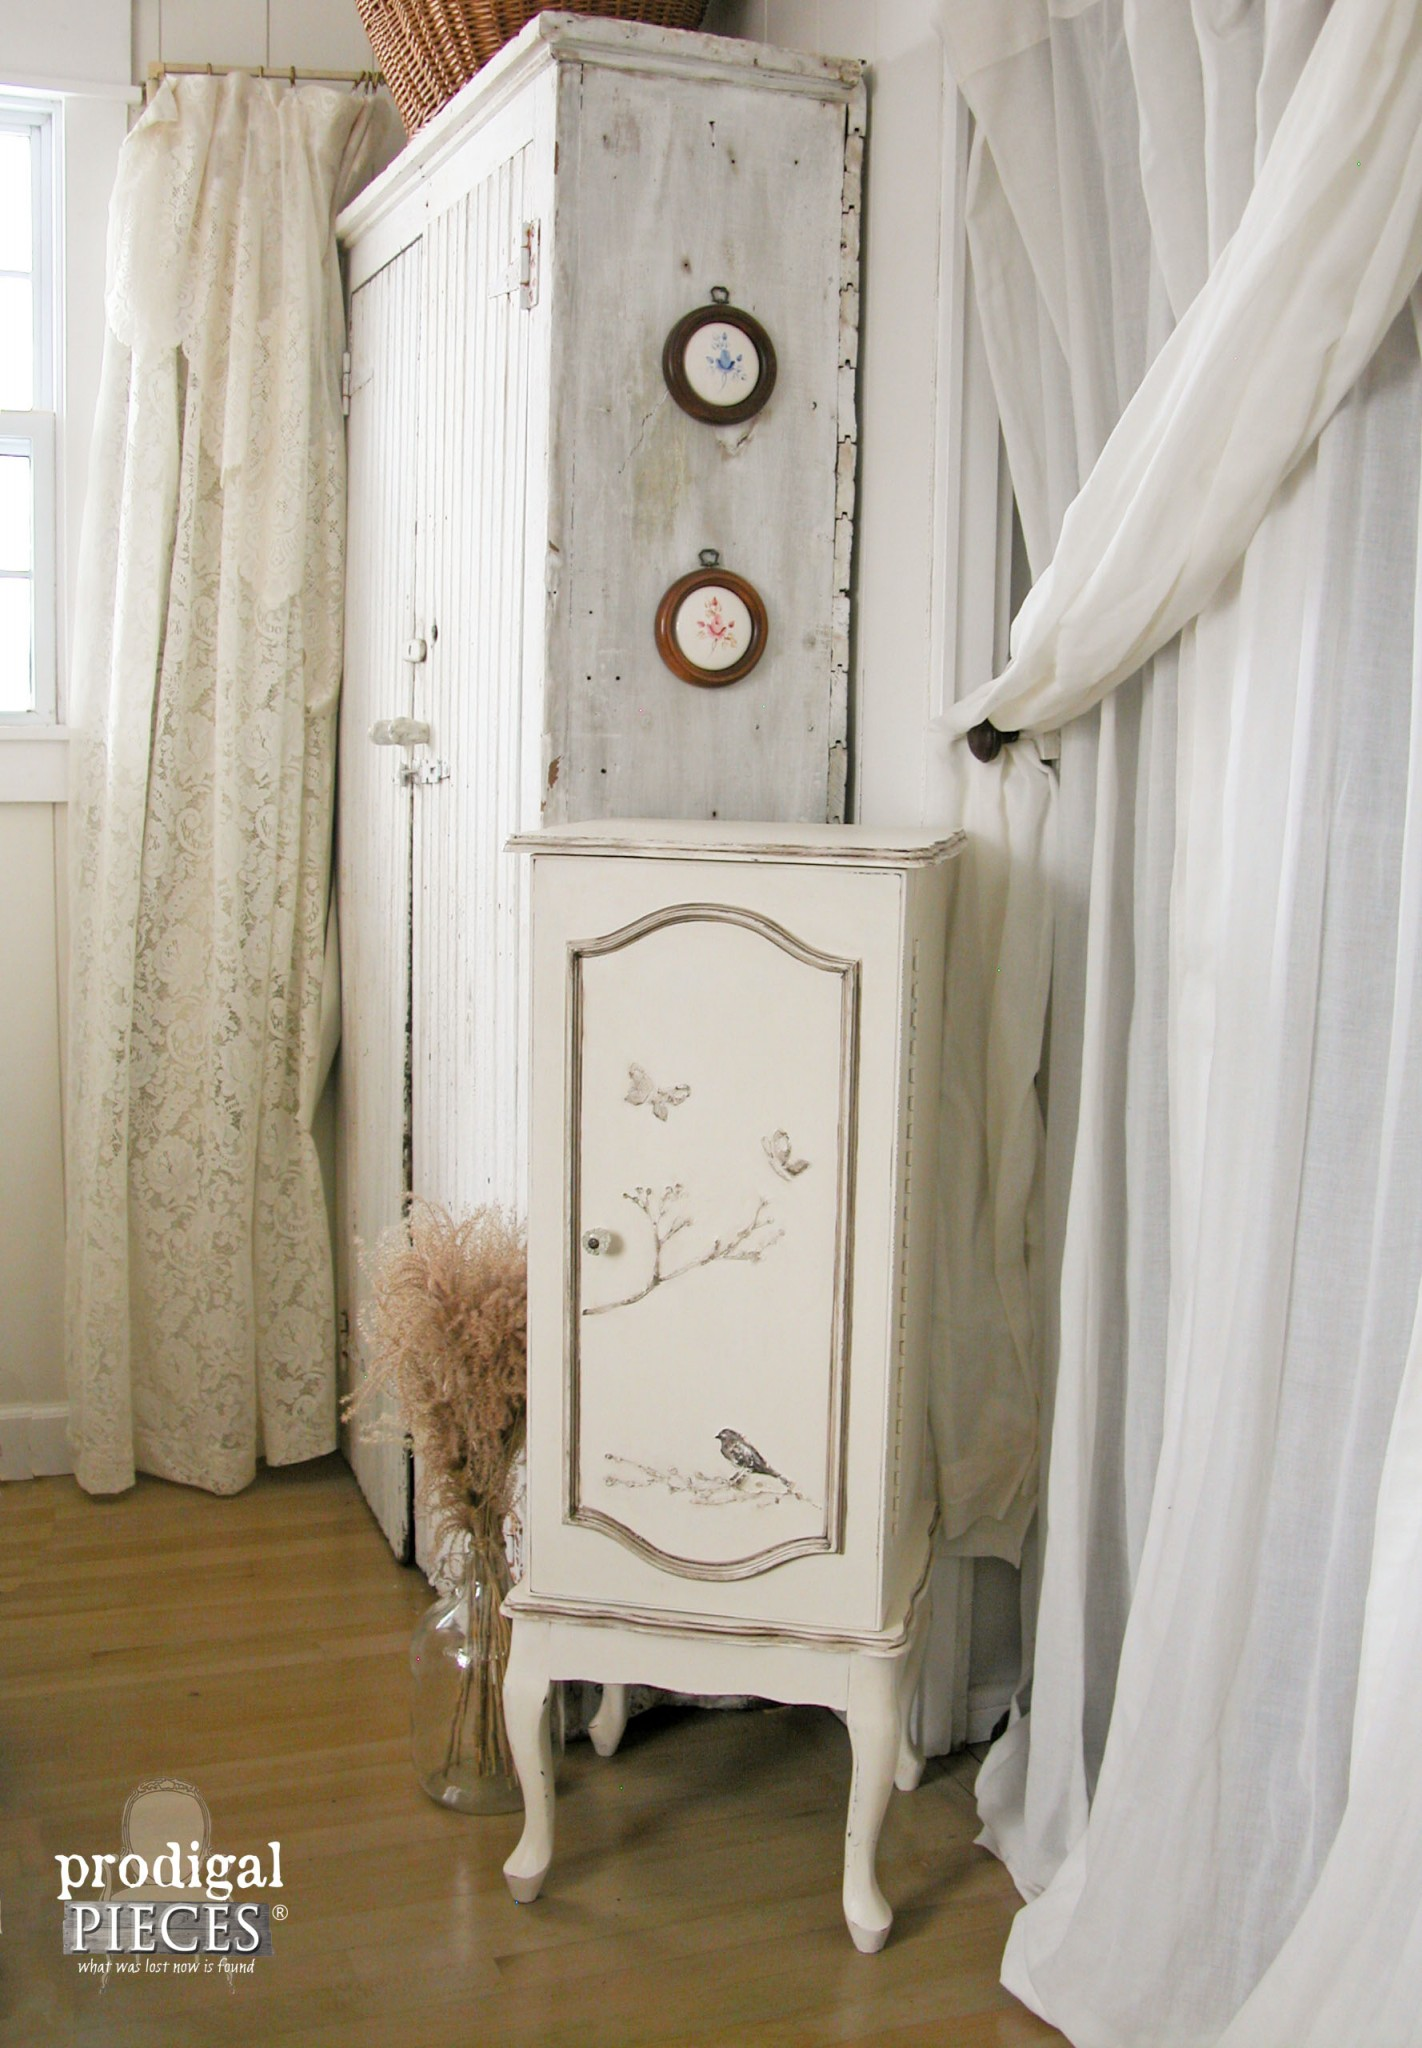 Vintage White Embossed Jewelry Armoire in Bedroom by Prodigal Pieces | www.prodigalpieces.com